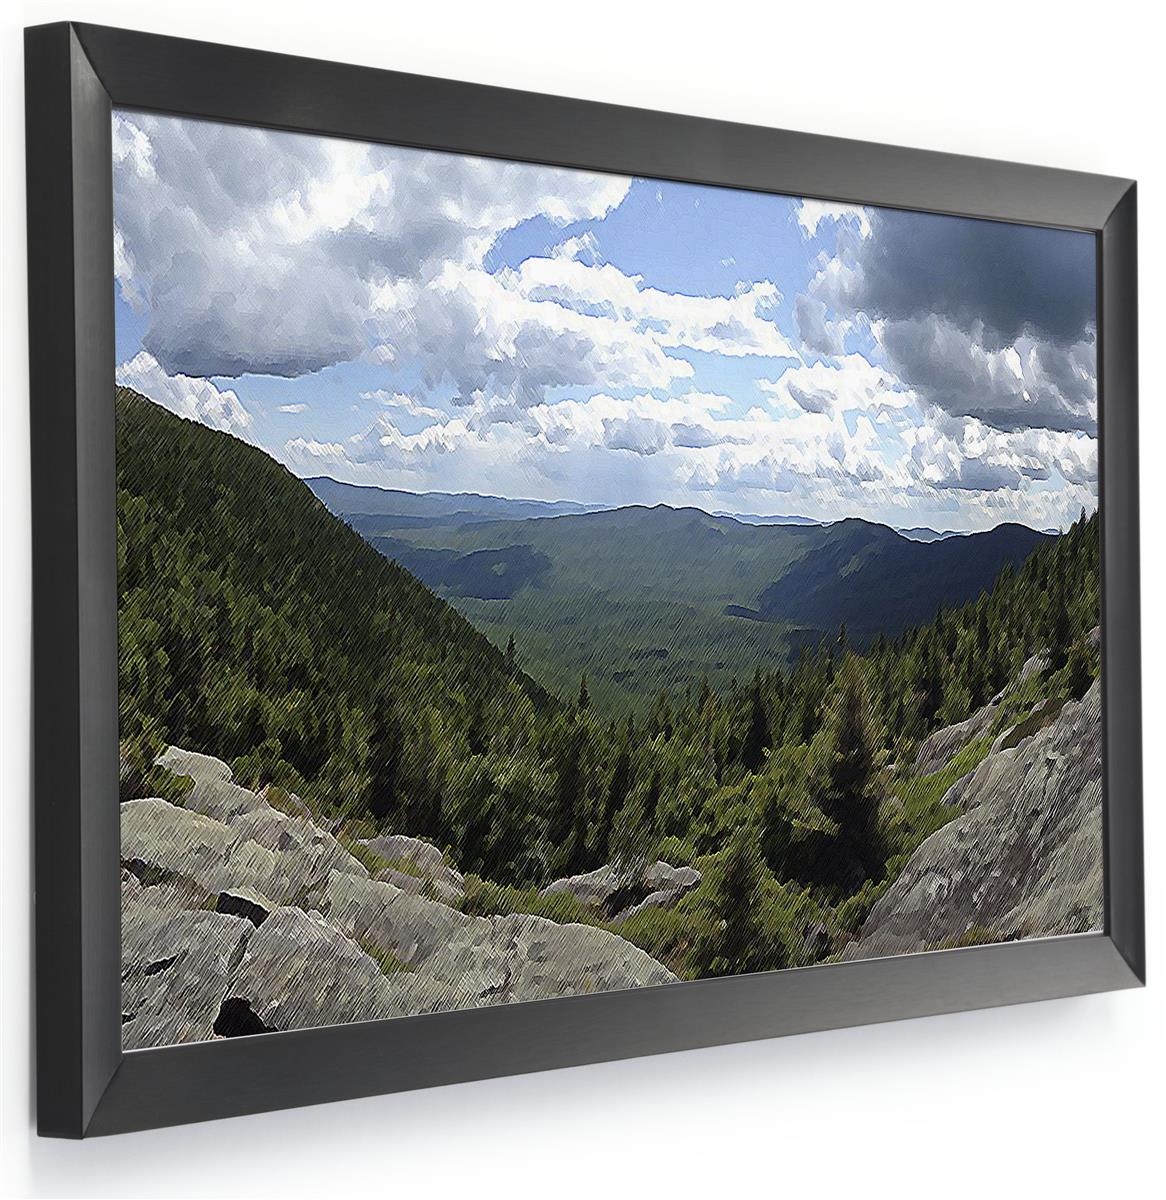 24 X 12 Frame Portrait Or Landscape Wall Mounting